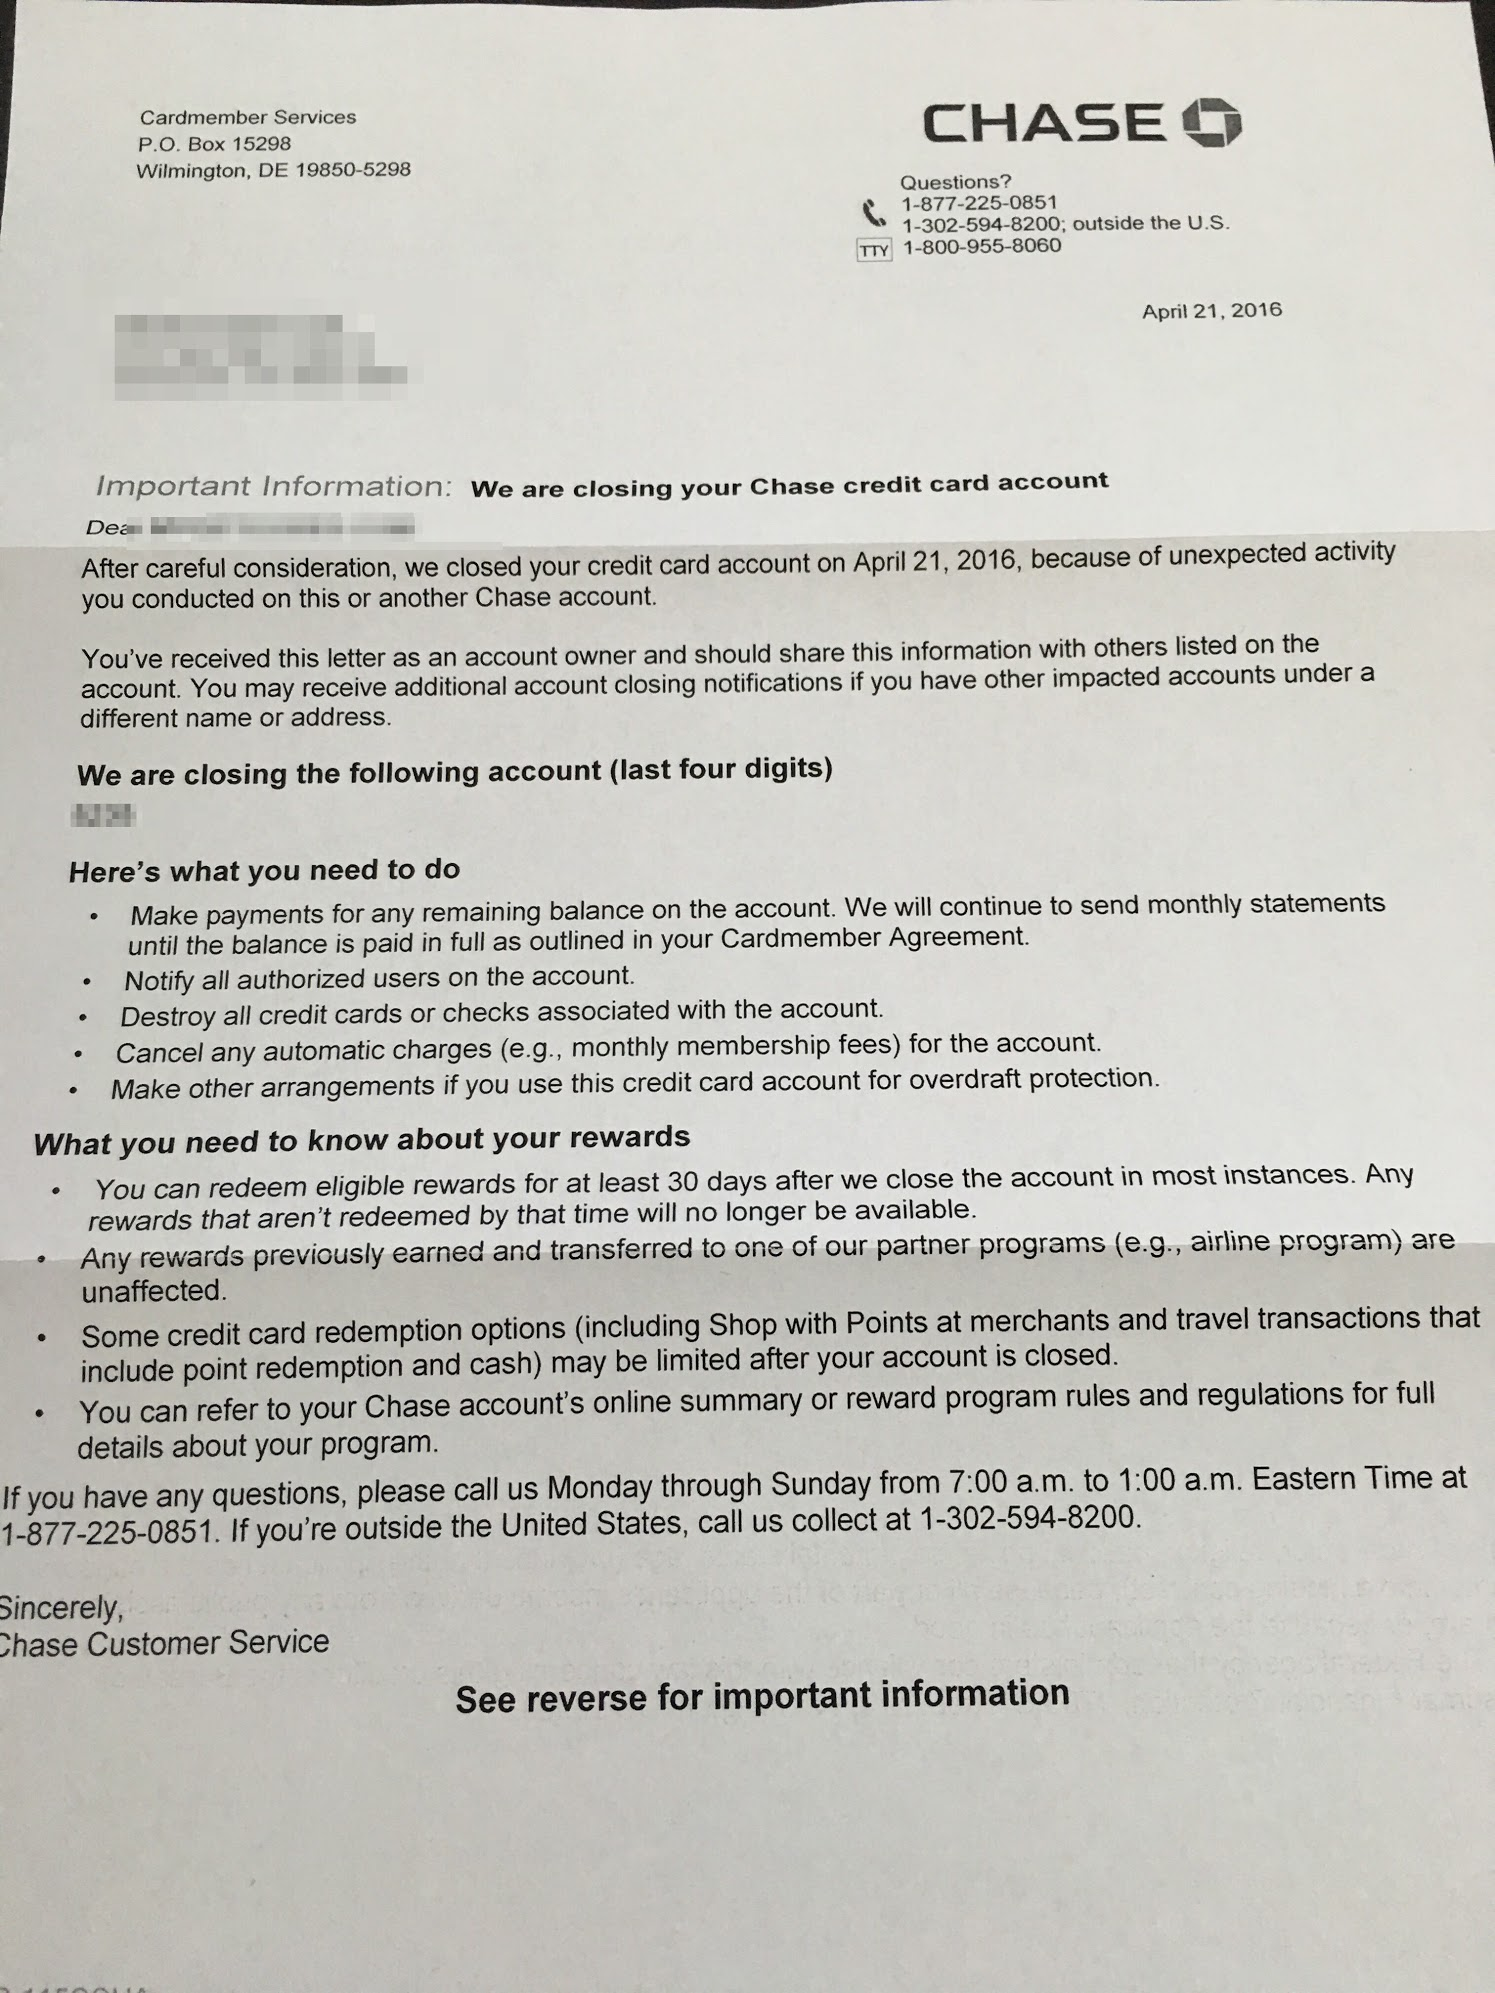 What A Chase Shutdown Letter Looks Like